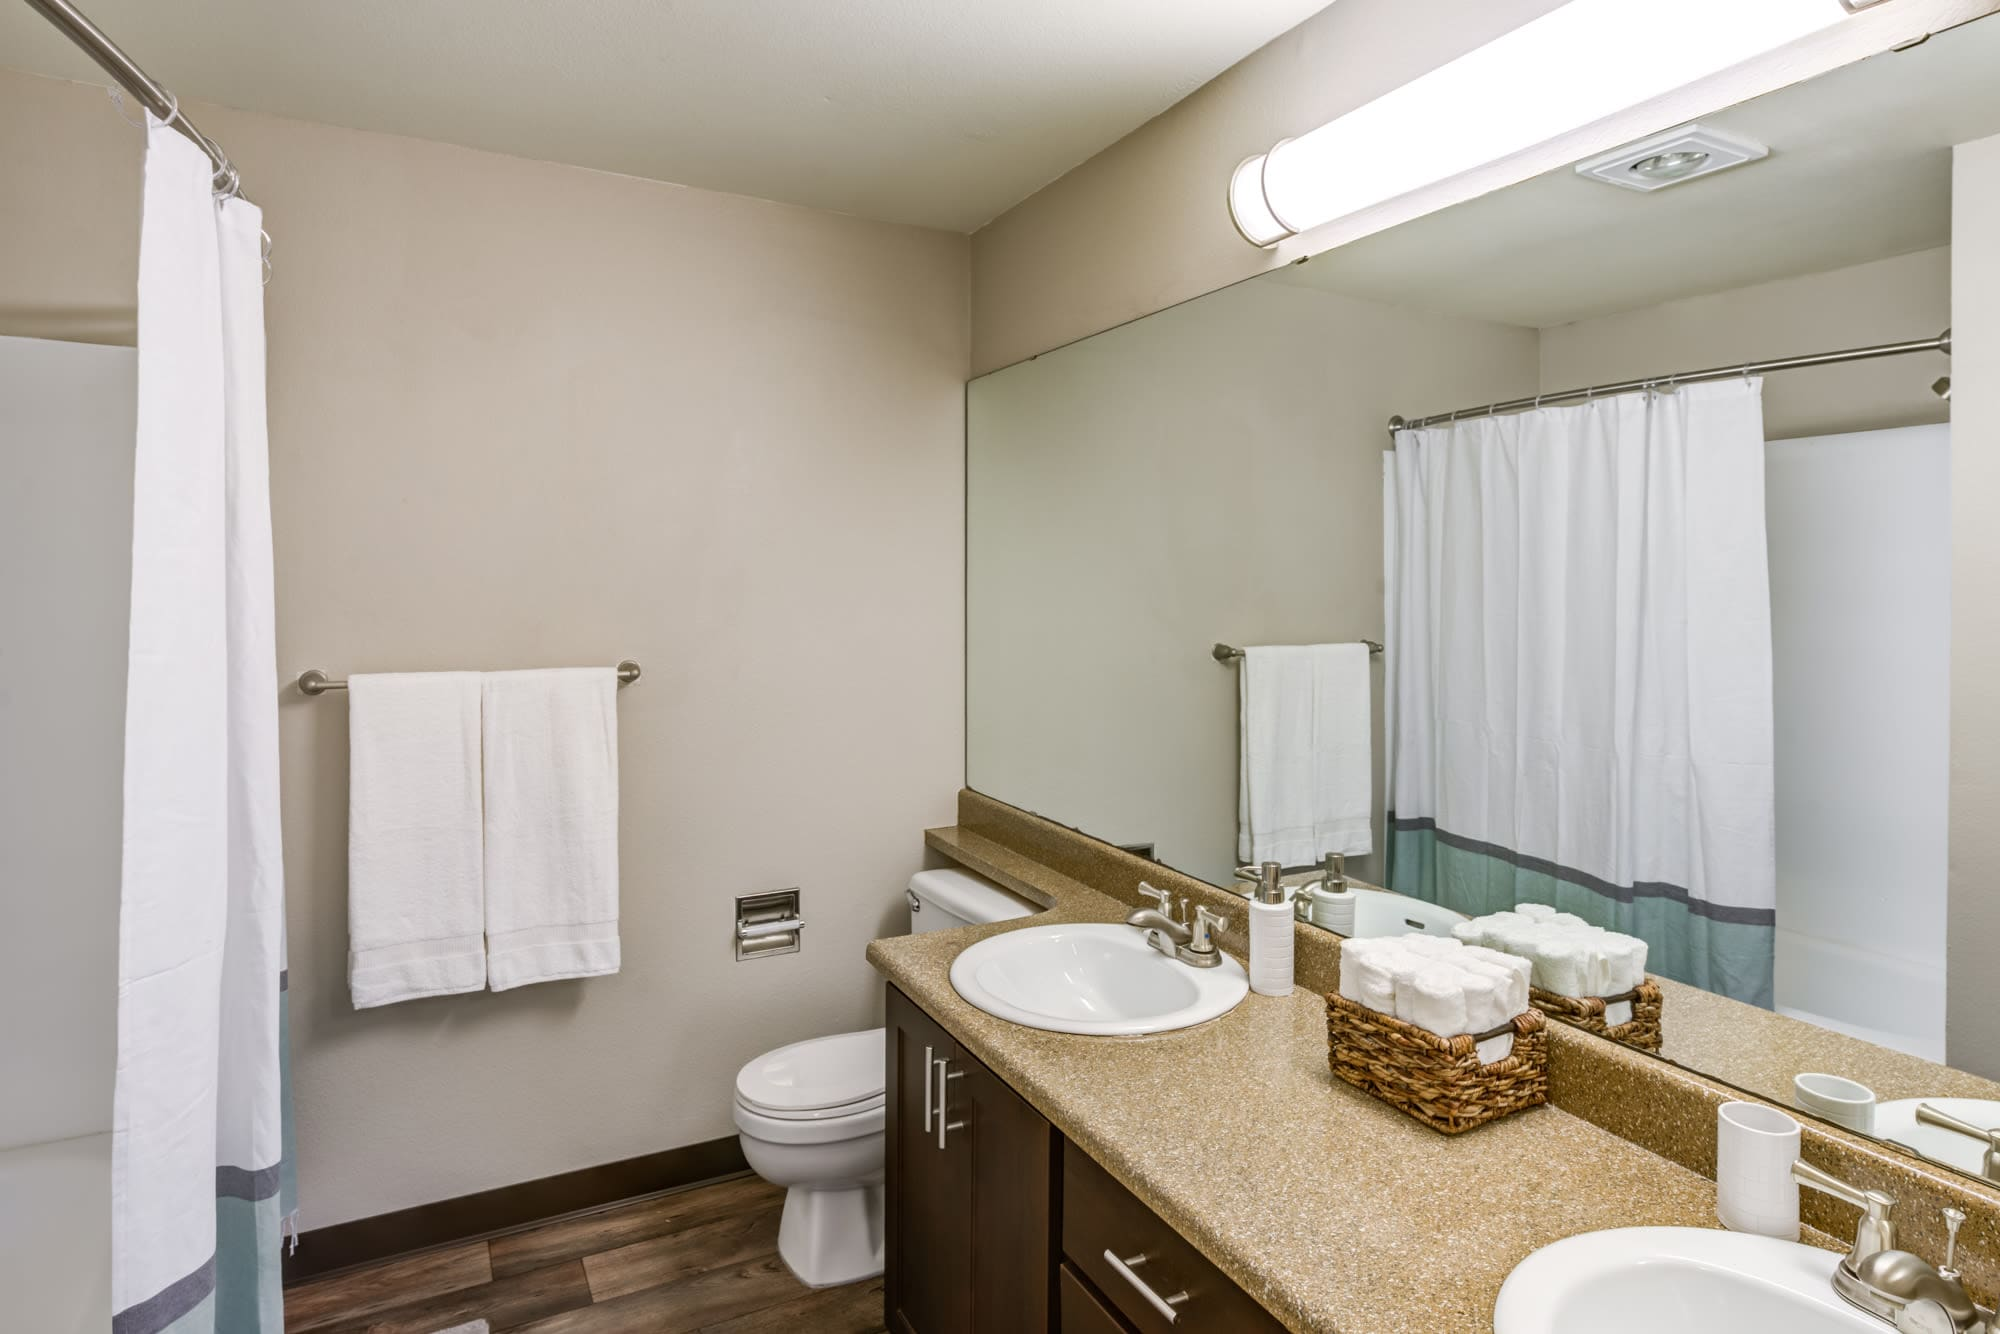 Bathroom with tub at Olin Fields Apartments